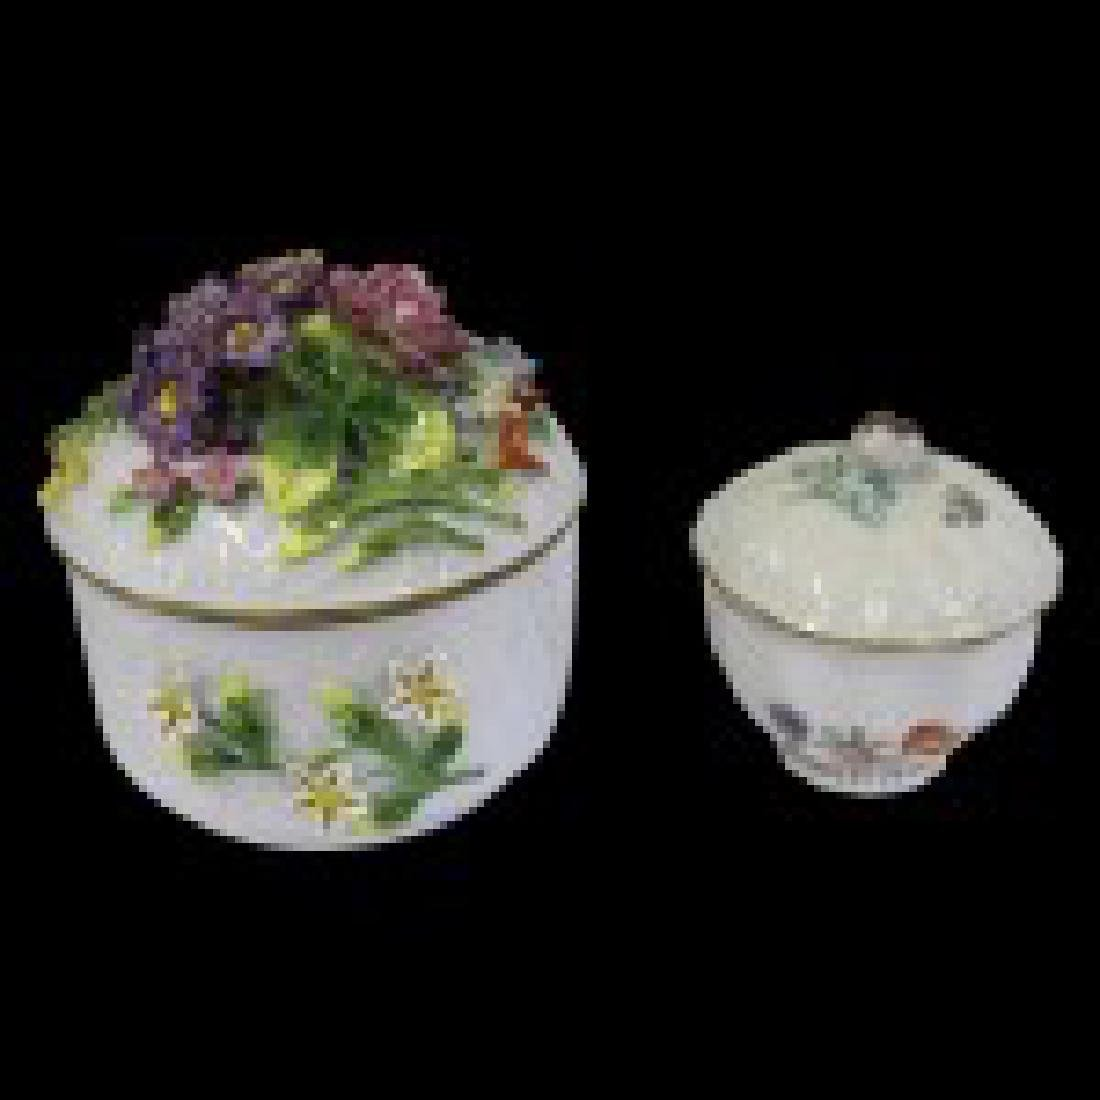 Pair of Dresden Porcelain Bowls with Lids - 5